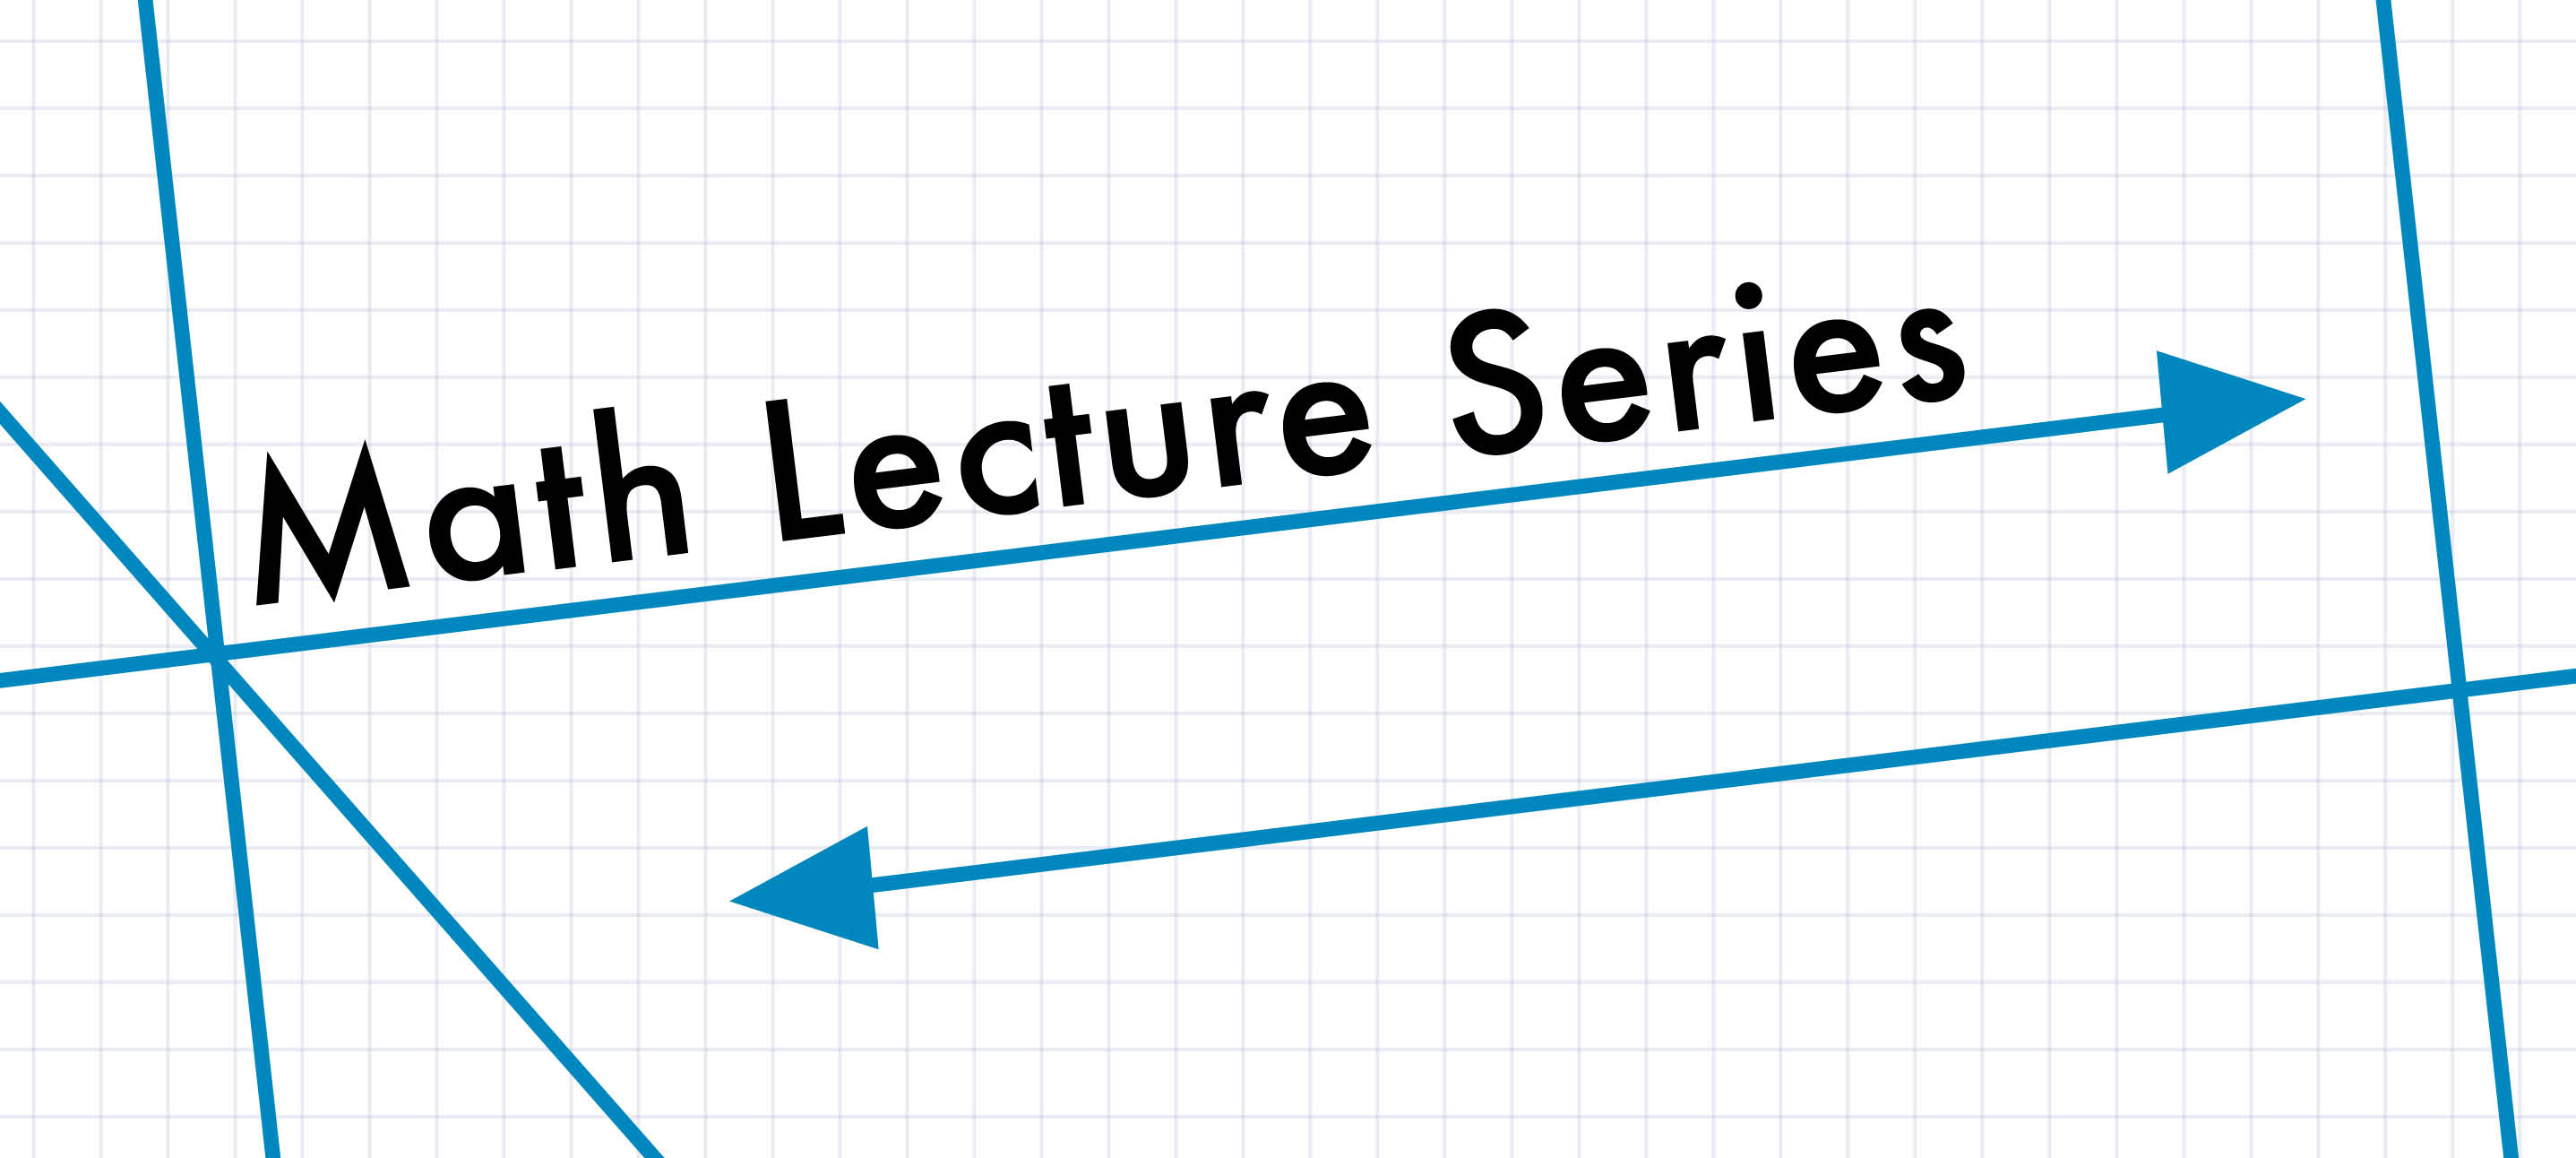 Math Lecture Series